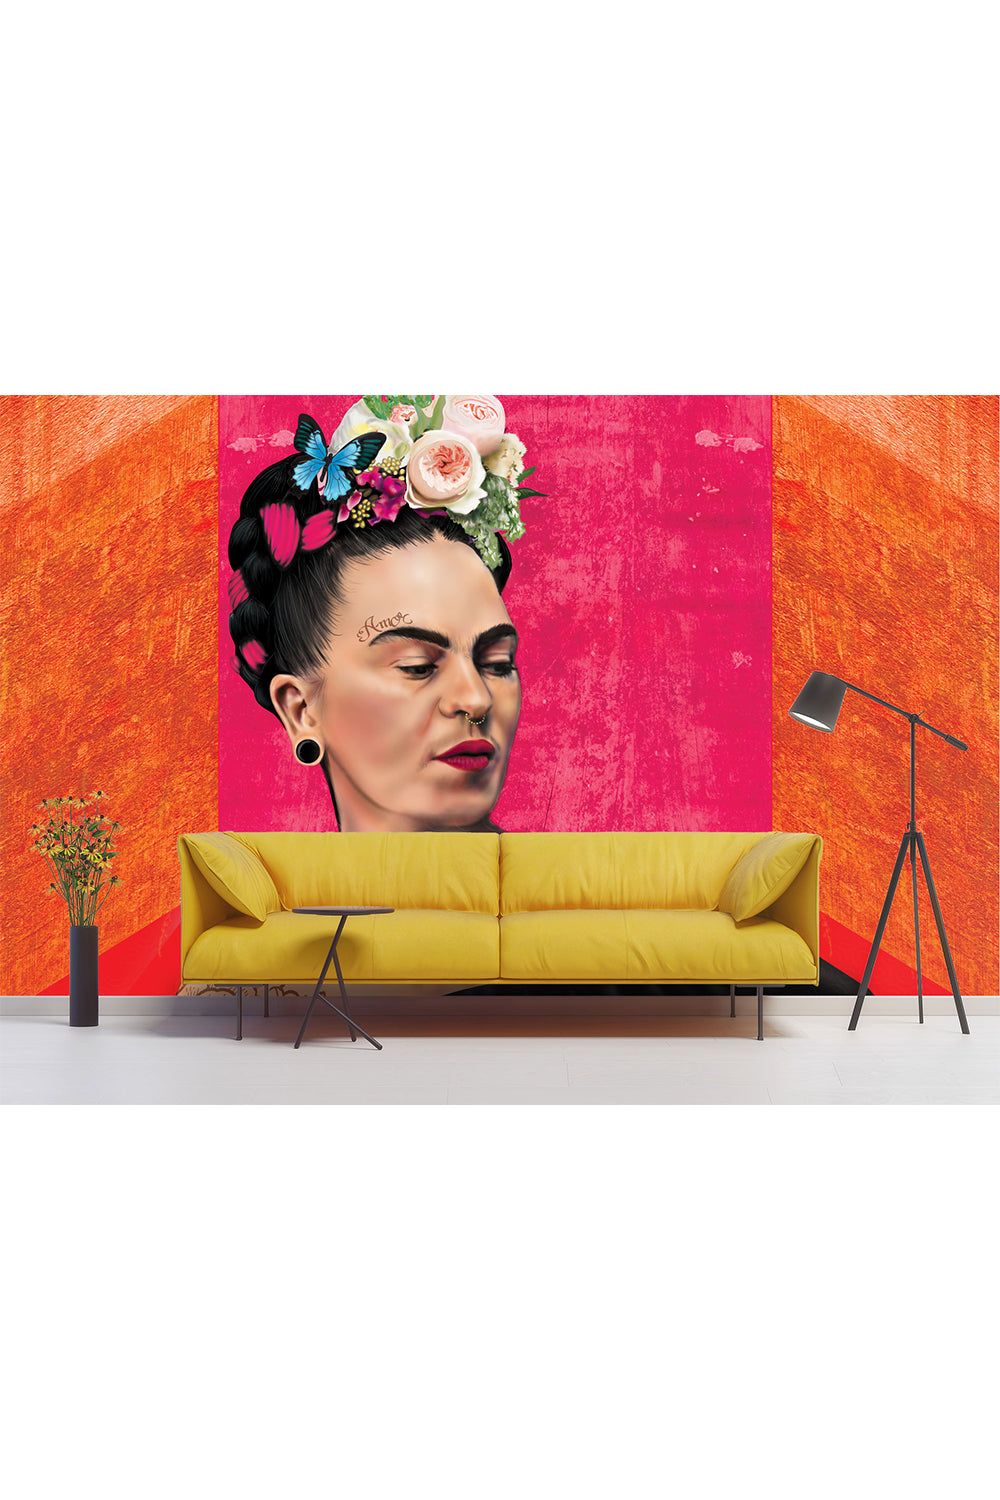 Frida Kahlo Wallpaper online NZ